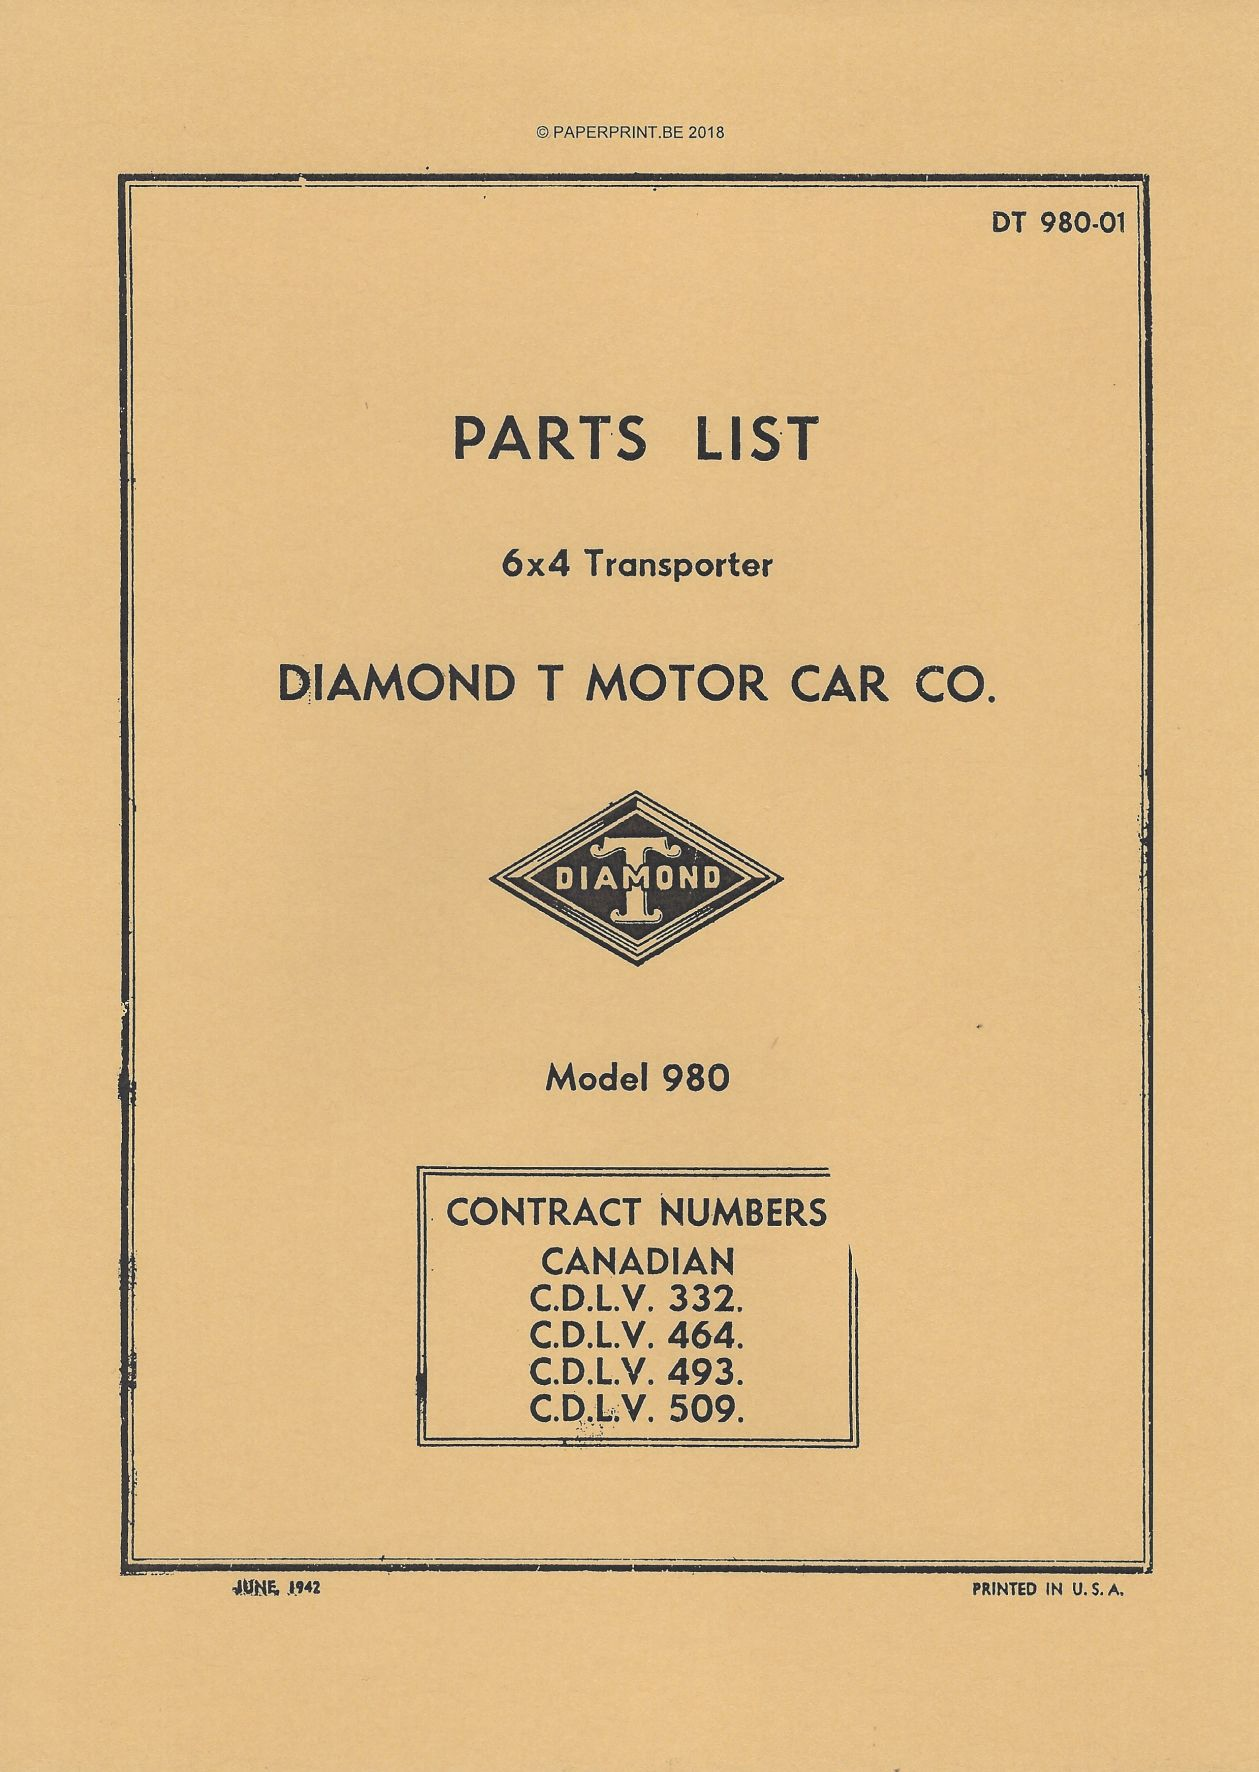 DT980-01 PARTS LIST CANADIAN DIAMOND T 980